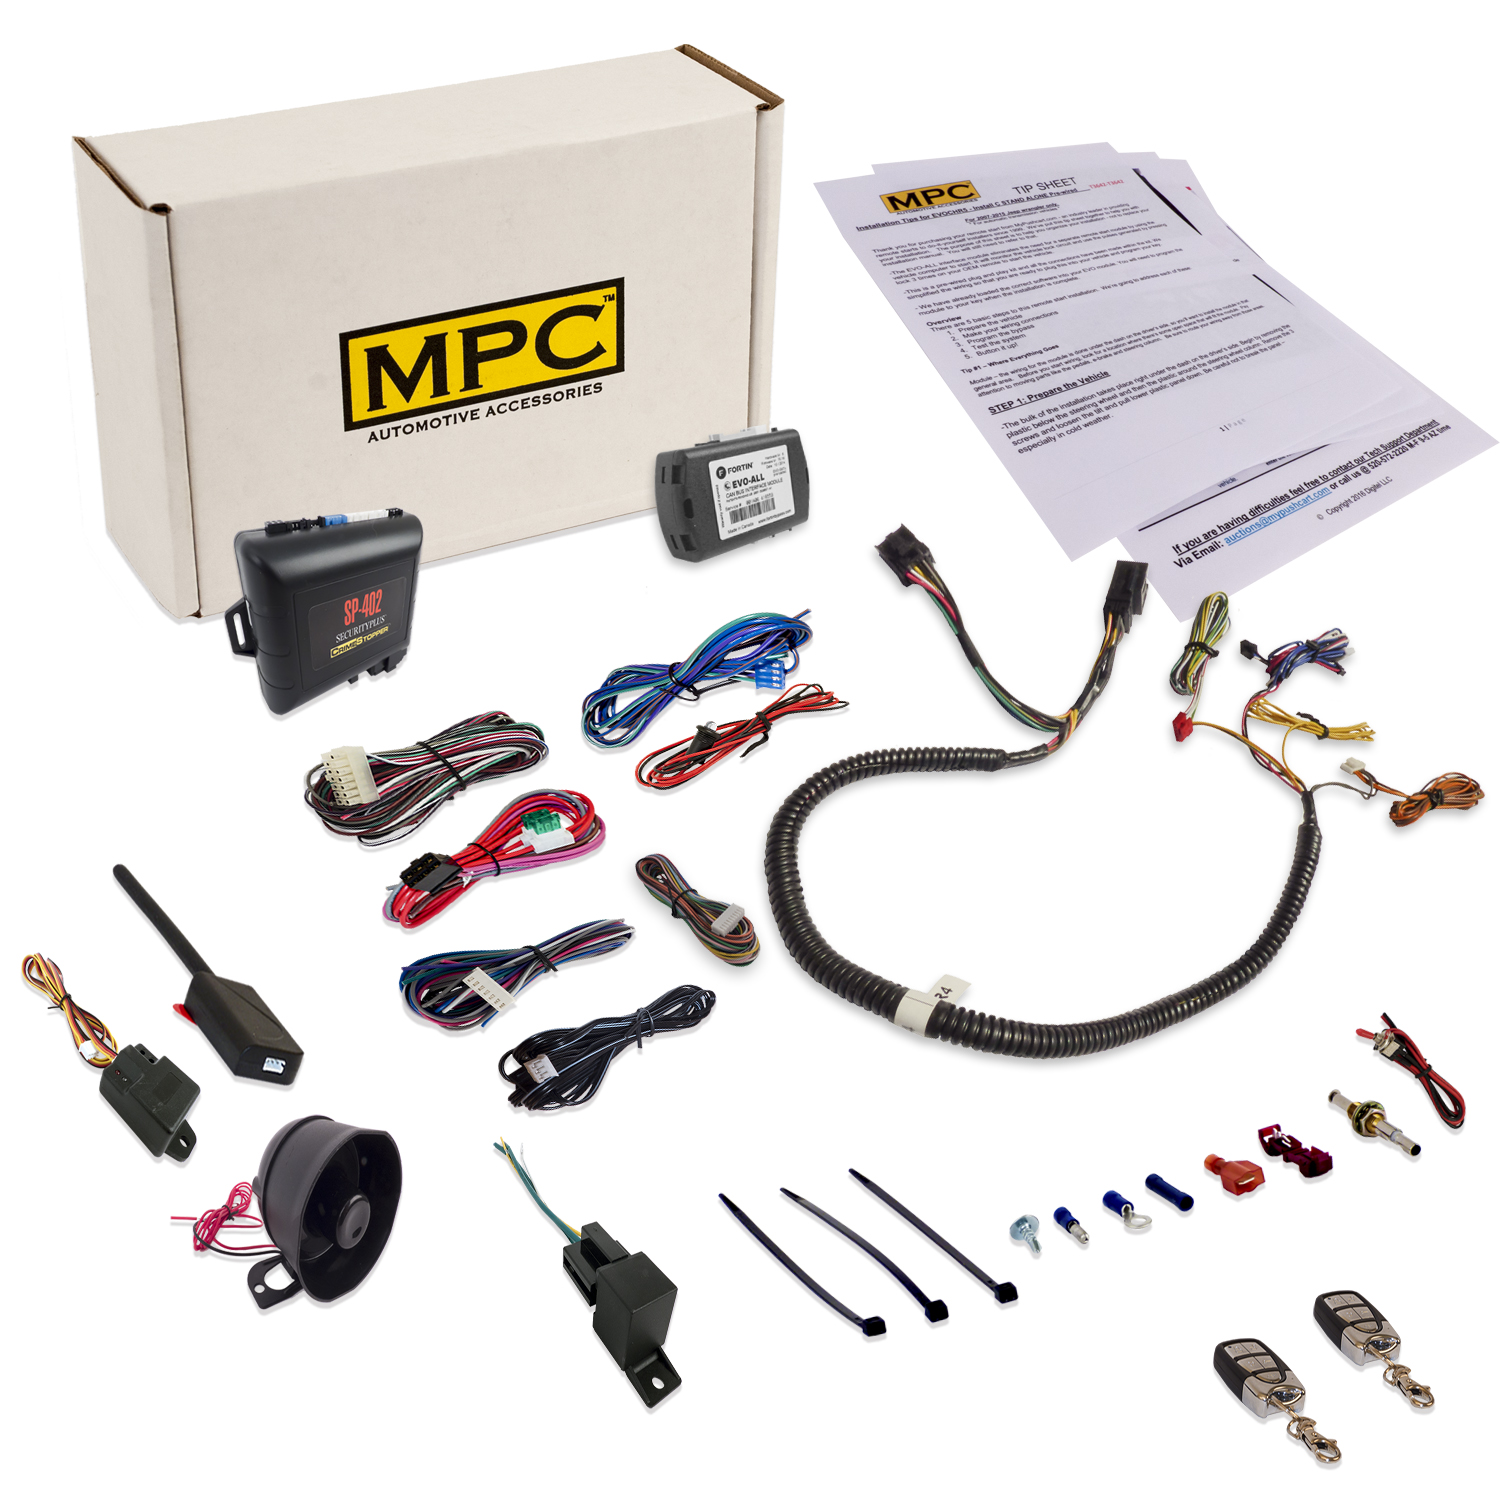 Complete Remote Start & Alarm Combo w  Plug In Bypass for Chyrsler Dodge Jeep by MPC